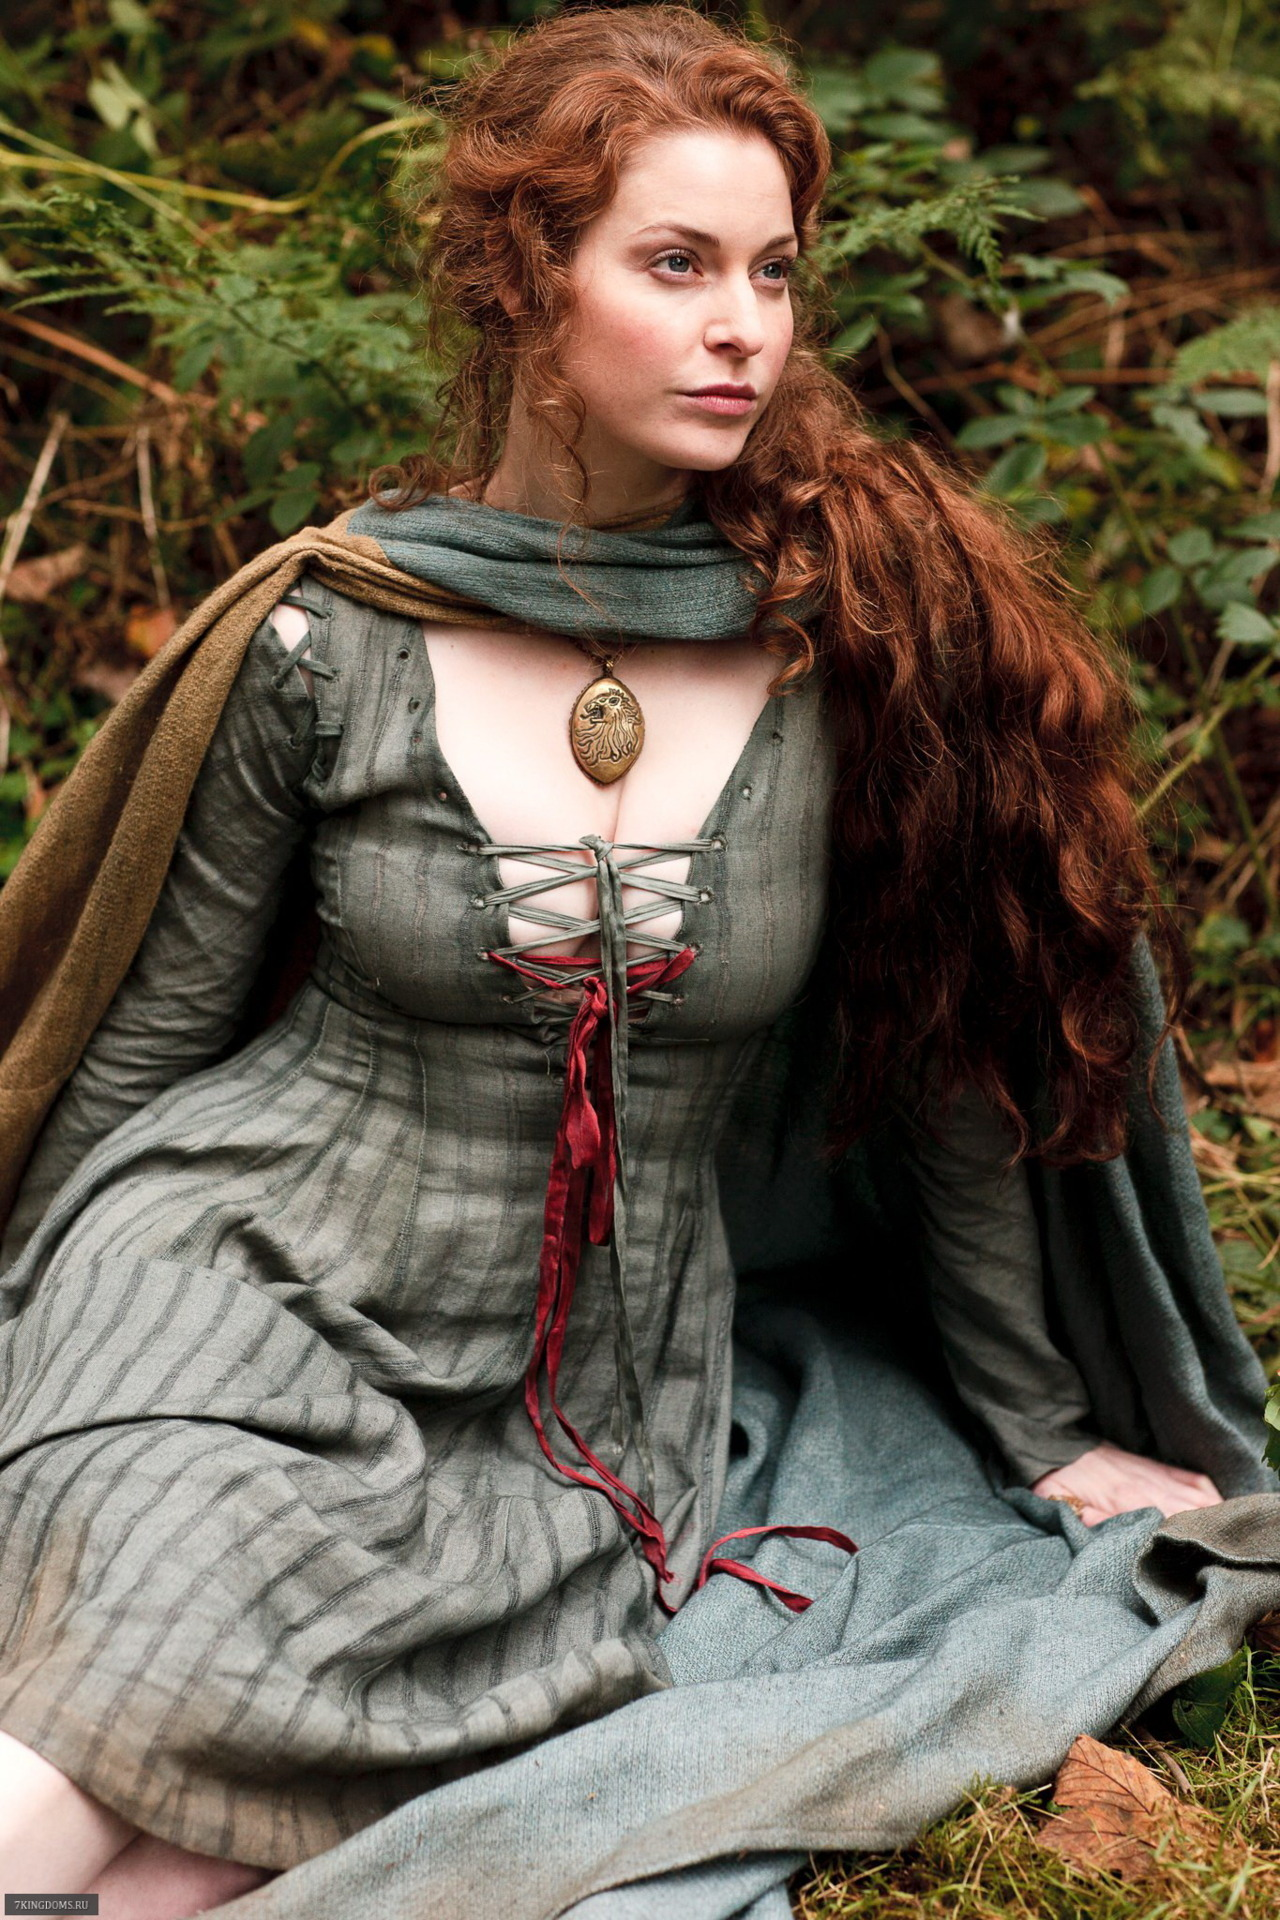 Esme Bianco as Ros in Game of Thrones